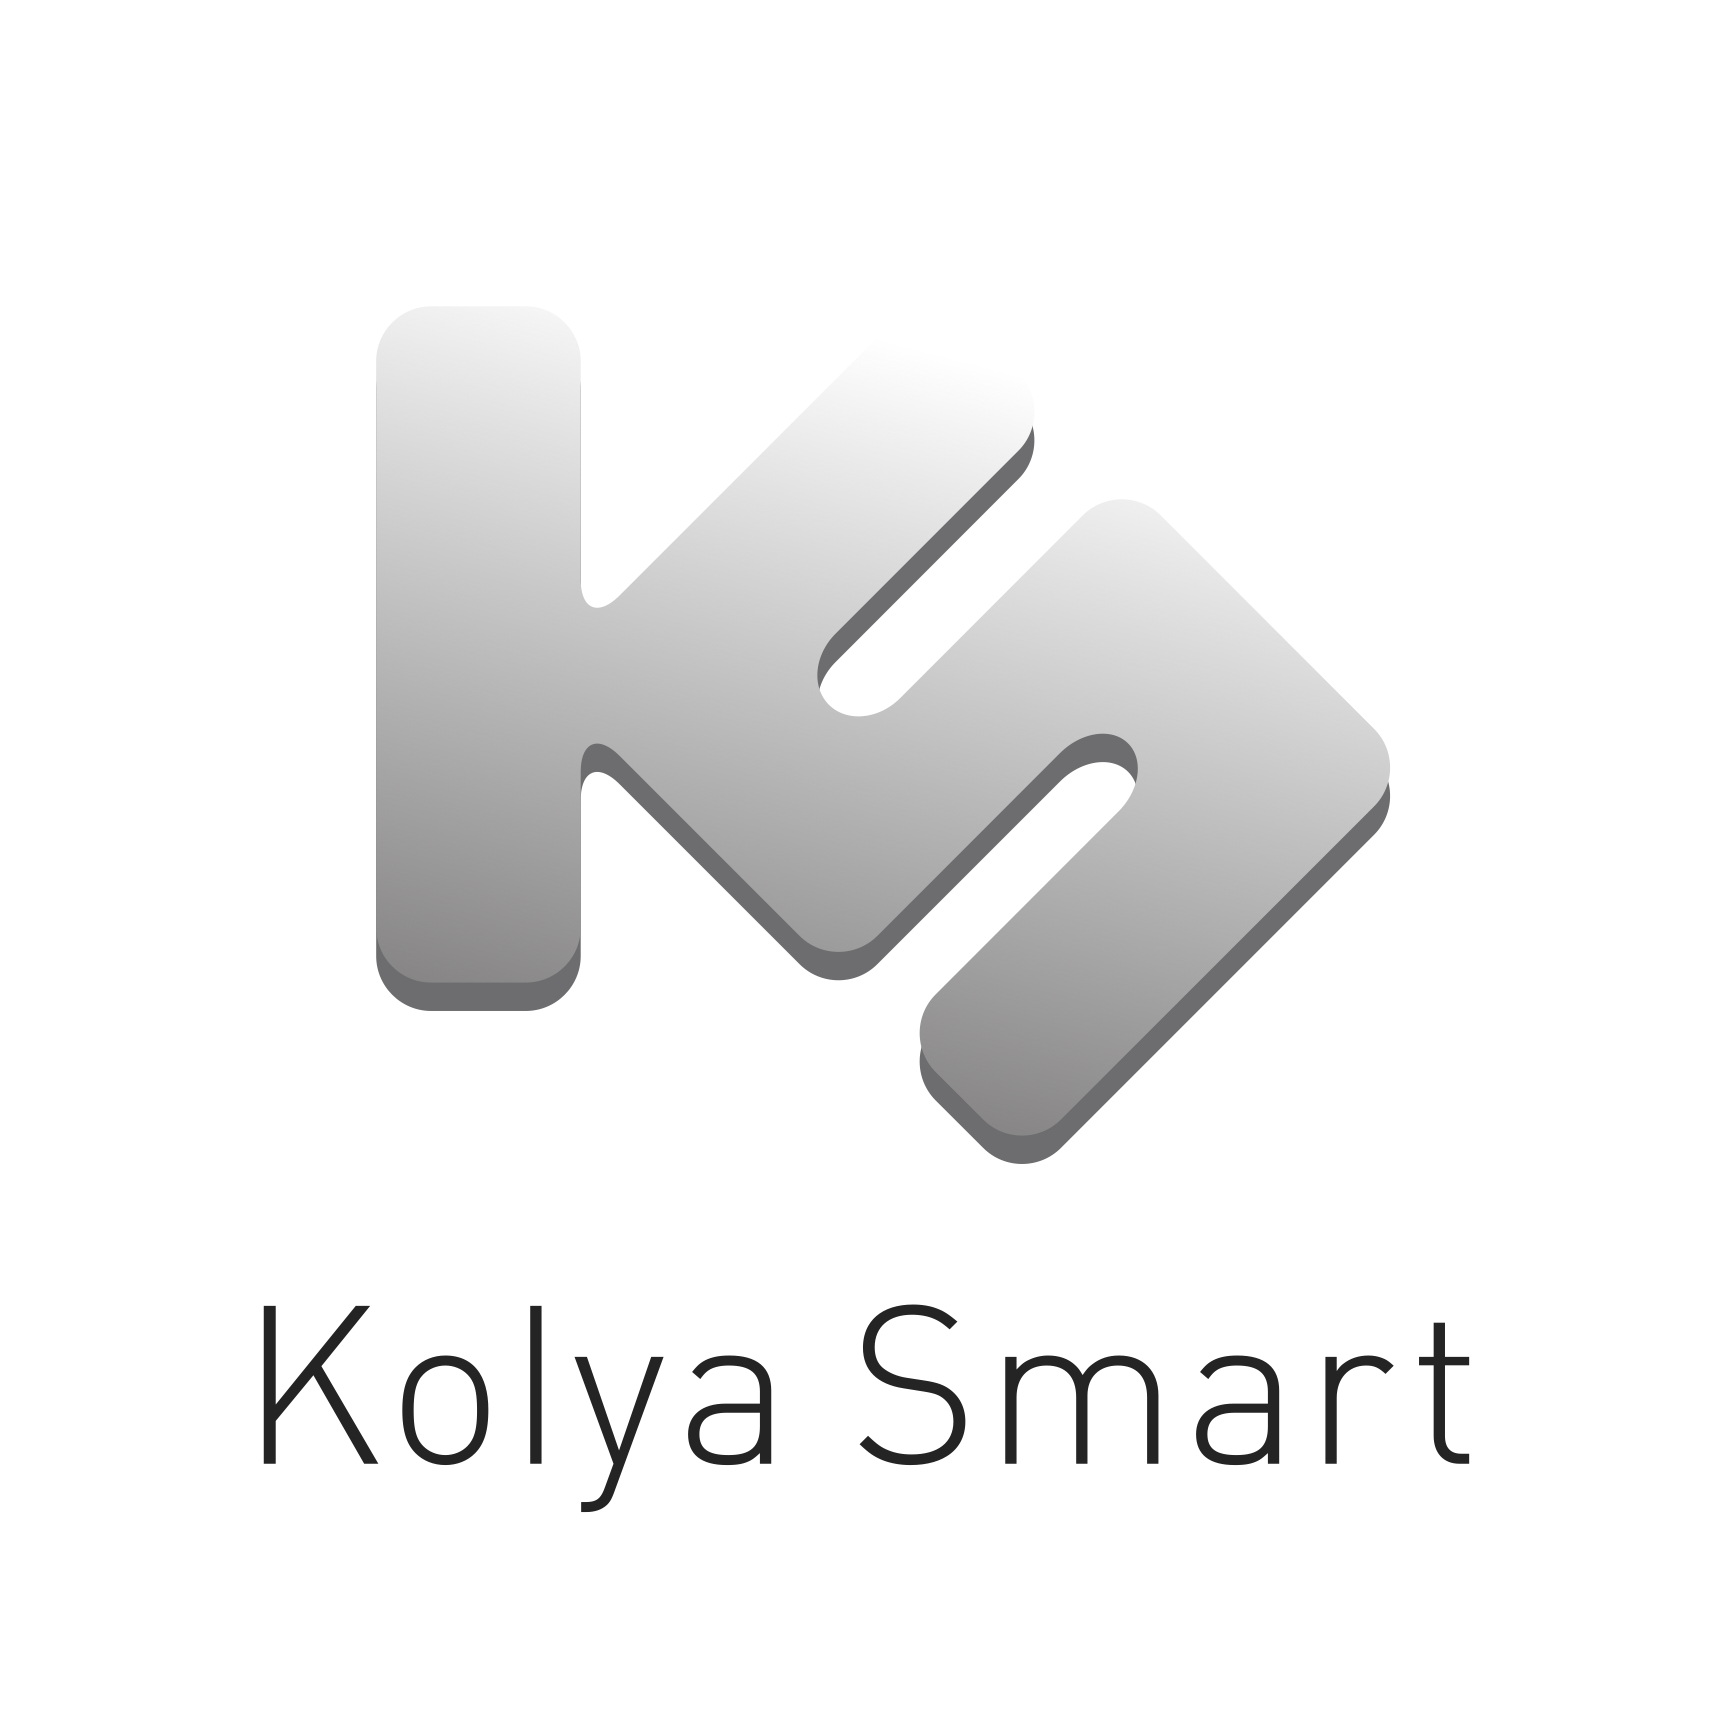 Kolya Smart (Raw Spirit)